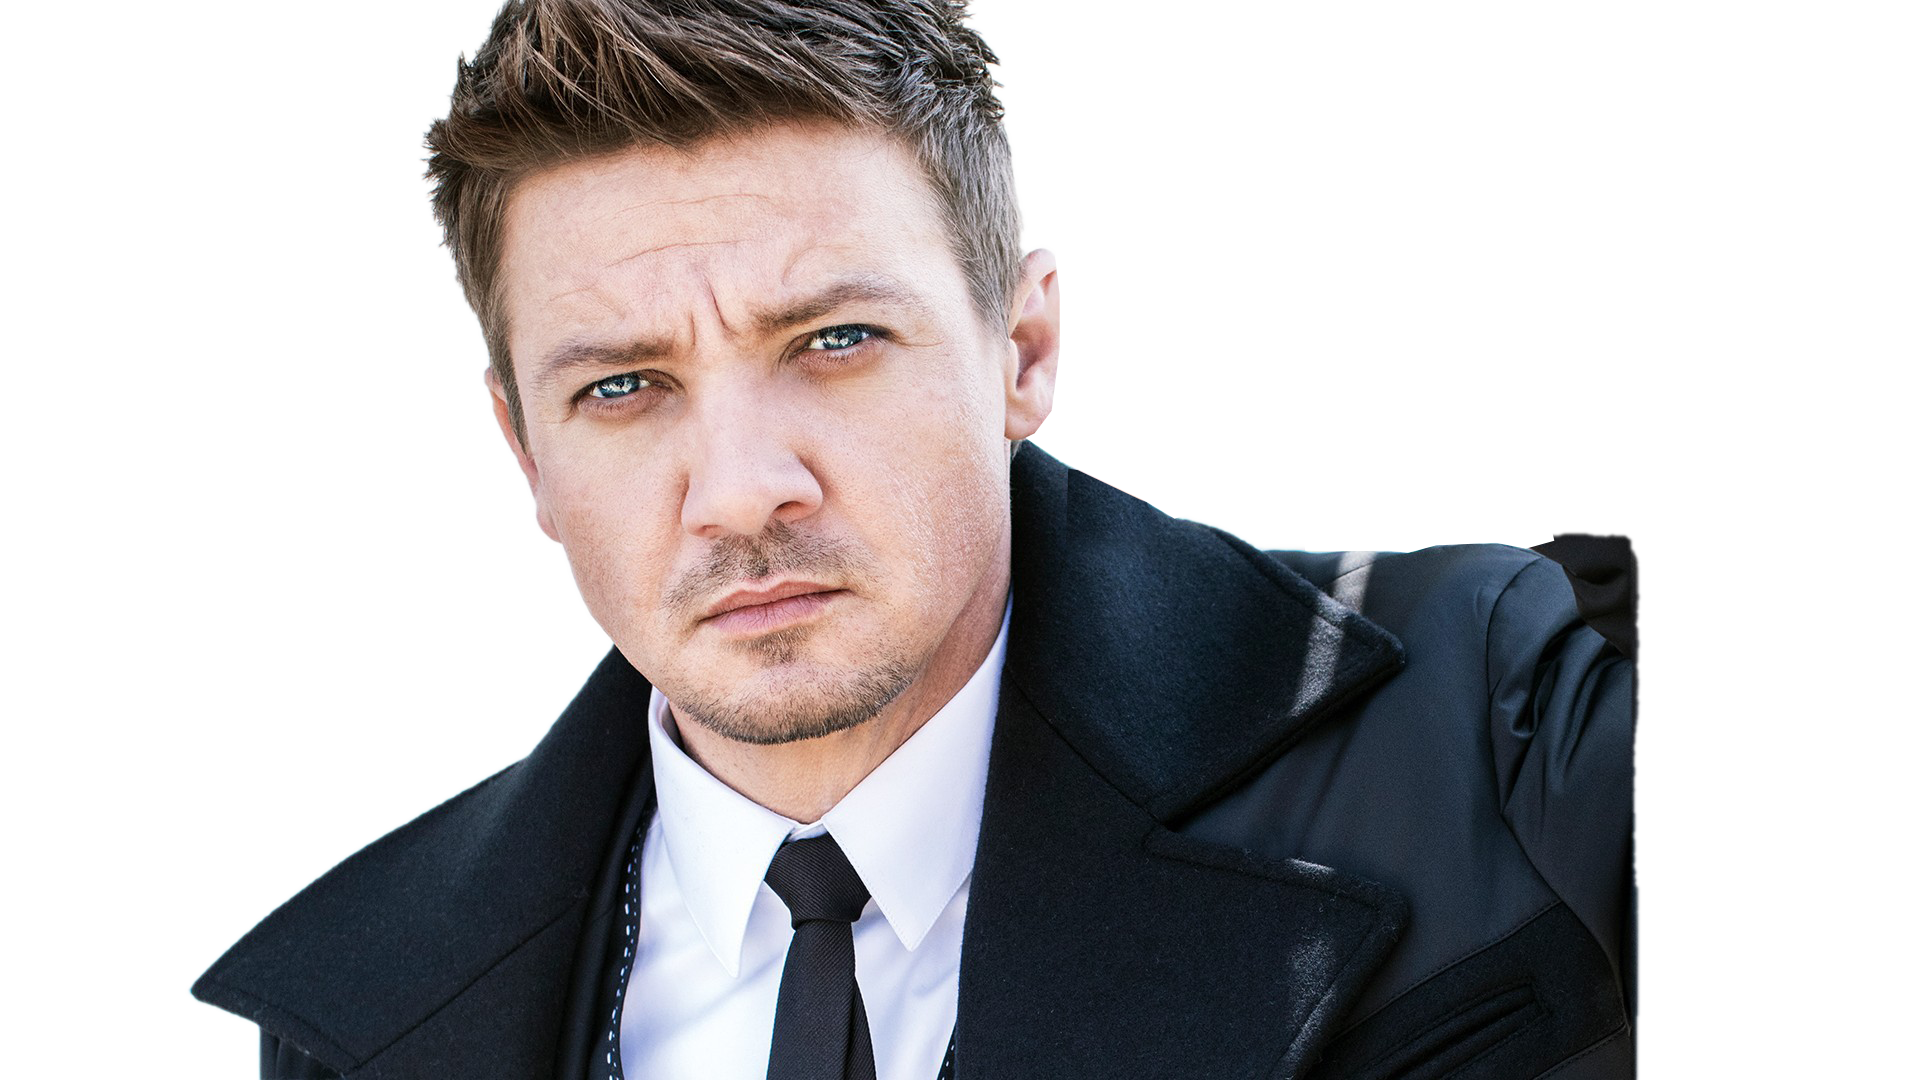 Jeremy Renner PNG Images Transparent Background PNG Play 1920x1080